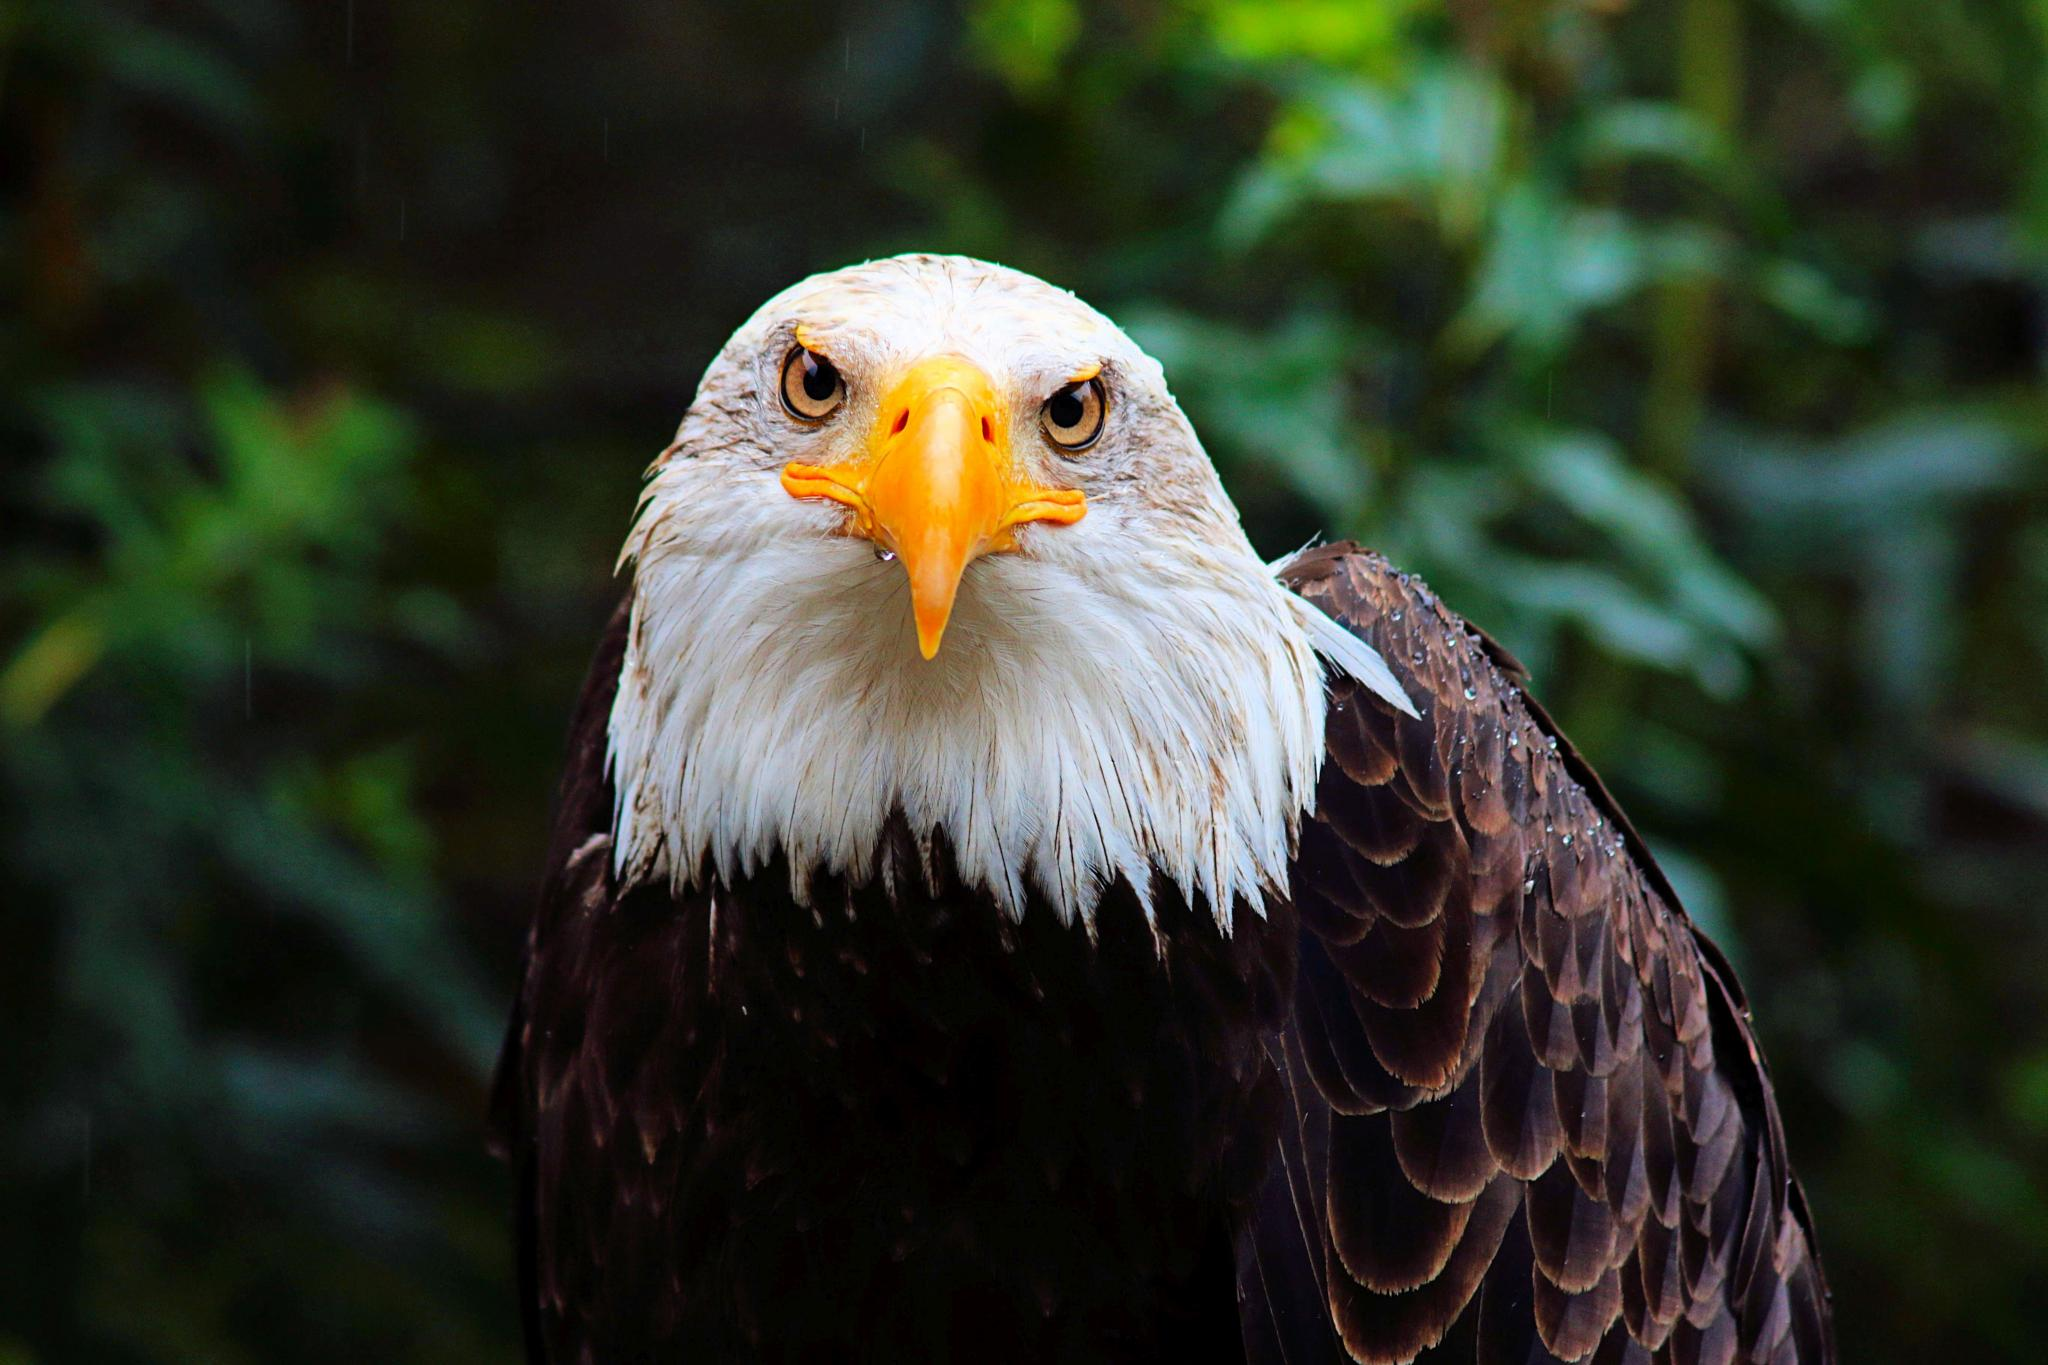 Bald Eagle by Mike Thompson